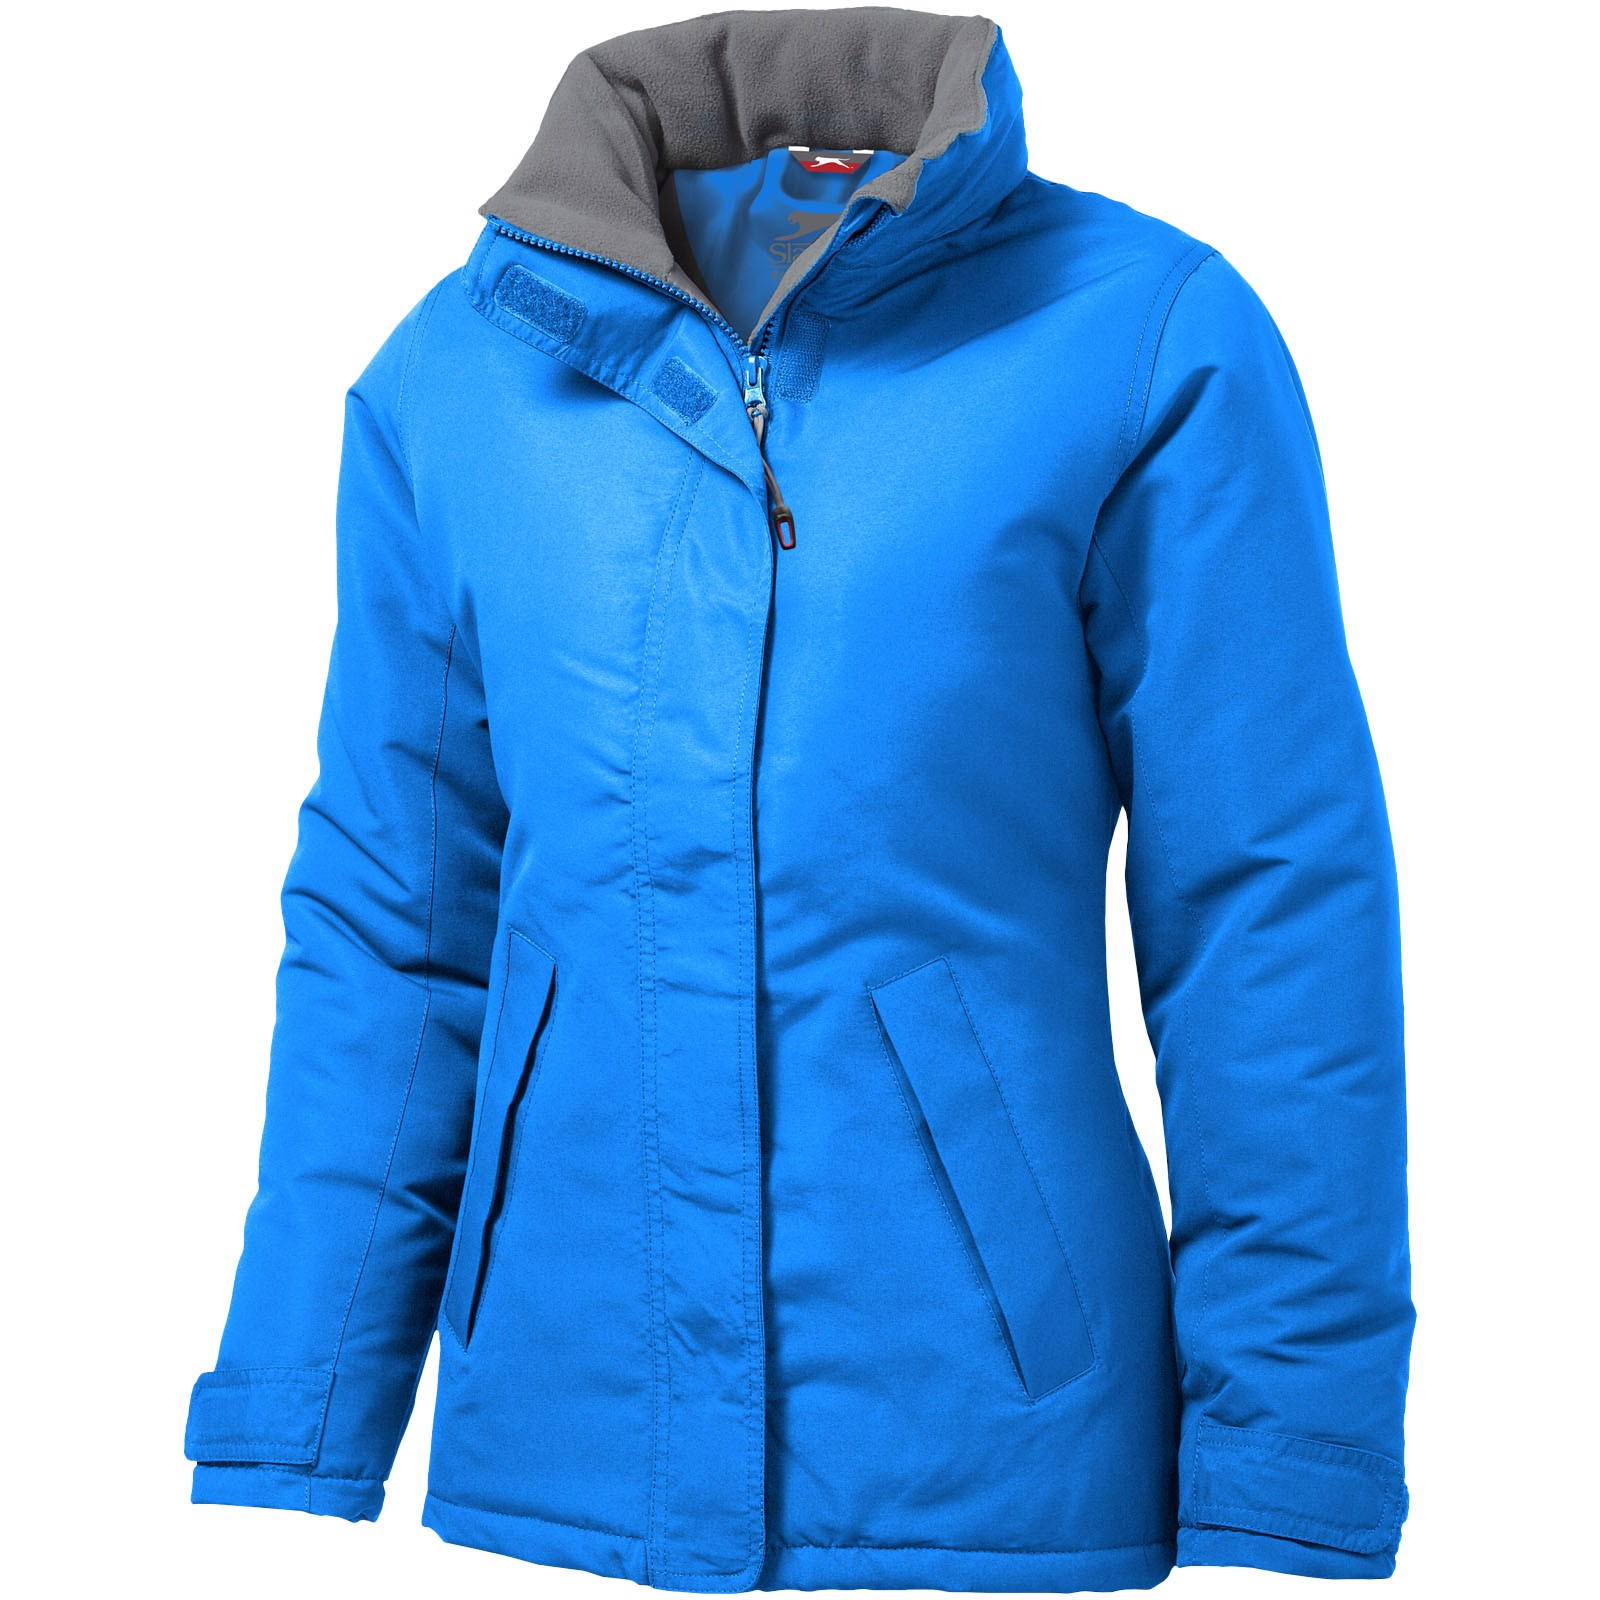 Under Spin ladies insulated jacket - Sky blue / XL